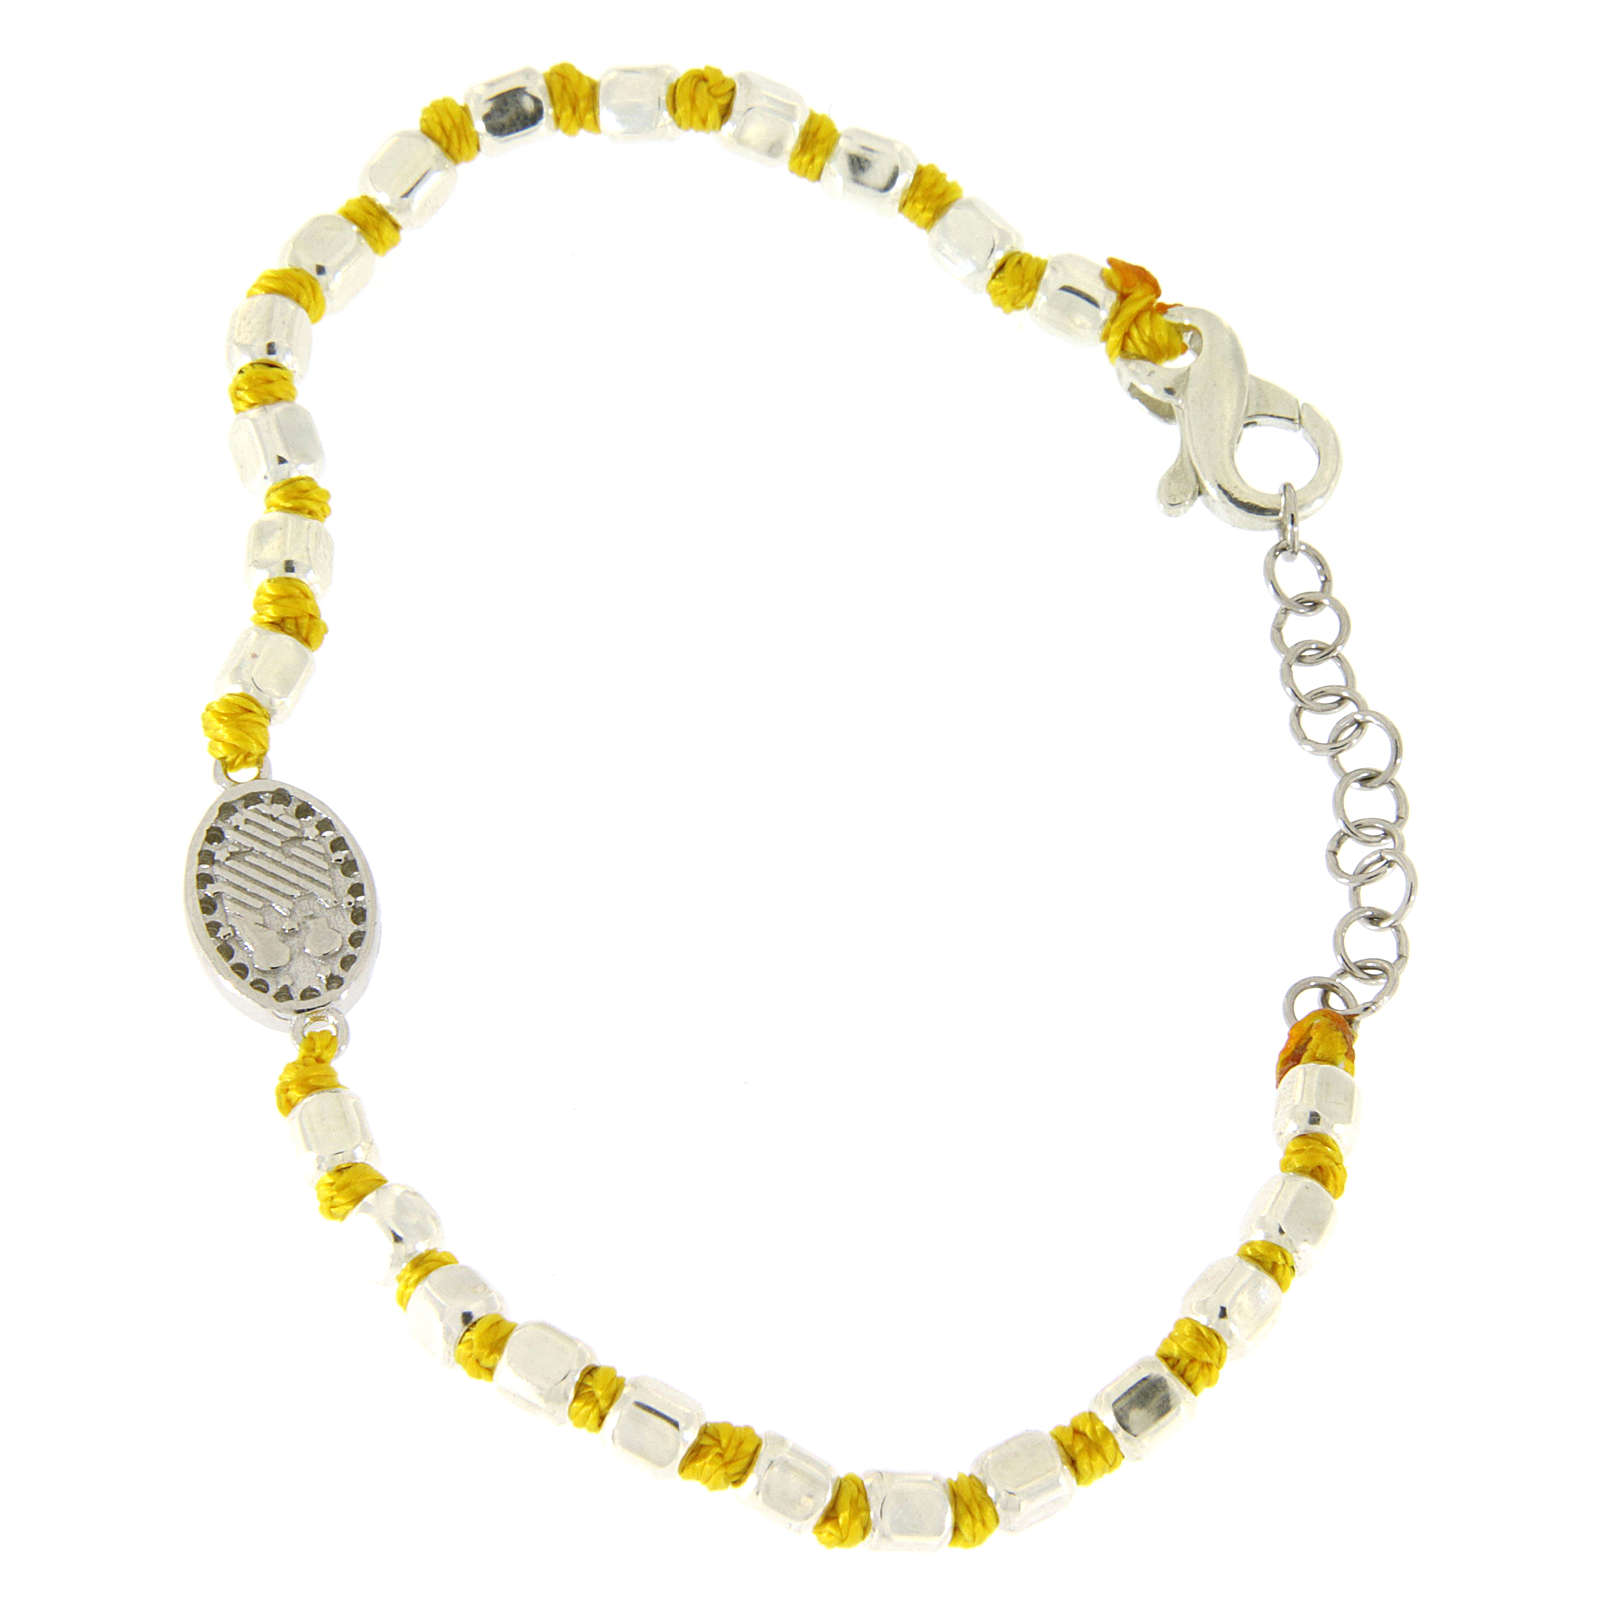 Bracelet with multifaceted spheres sized 2 mm with white zirconate Saint Rita medalet on yellow cotton cord 4